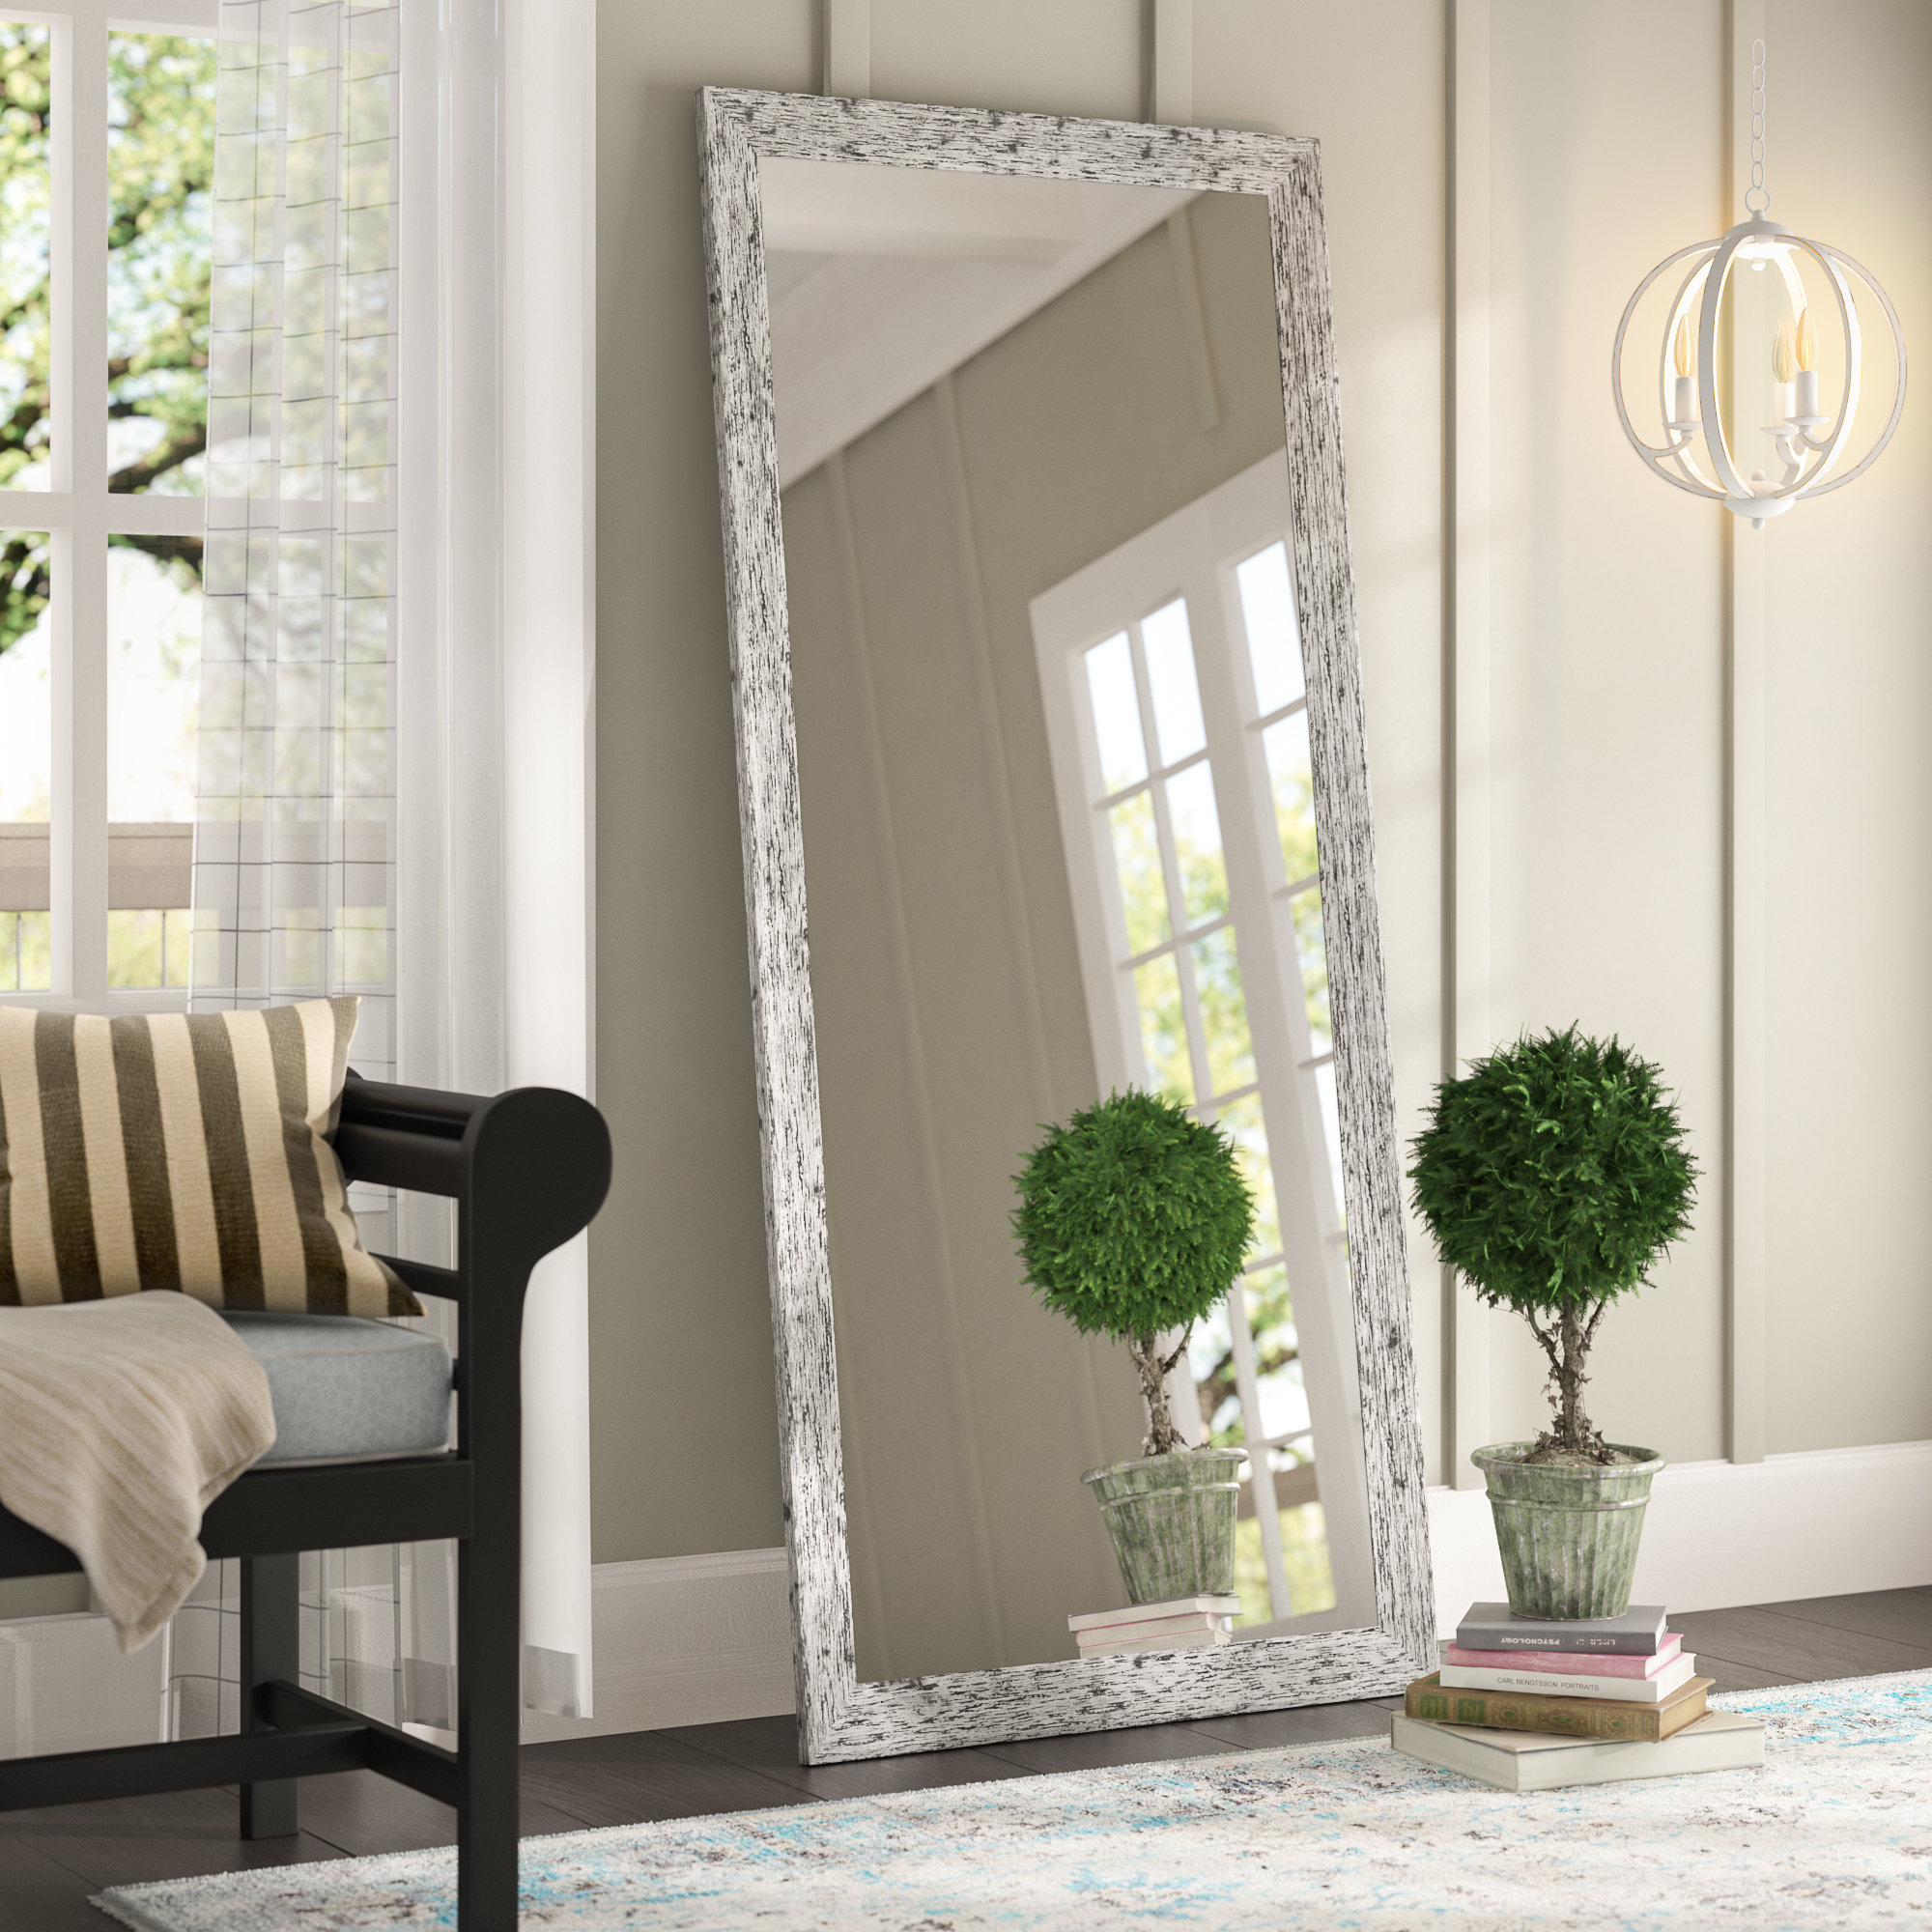 August Grove Pandit Full Length Mirror & Reviews | Wayfair For Handcrafted Farmhouse Full Length Mirrors (View 5 of 30)